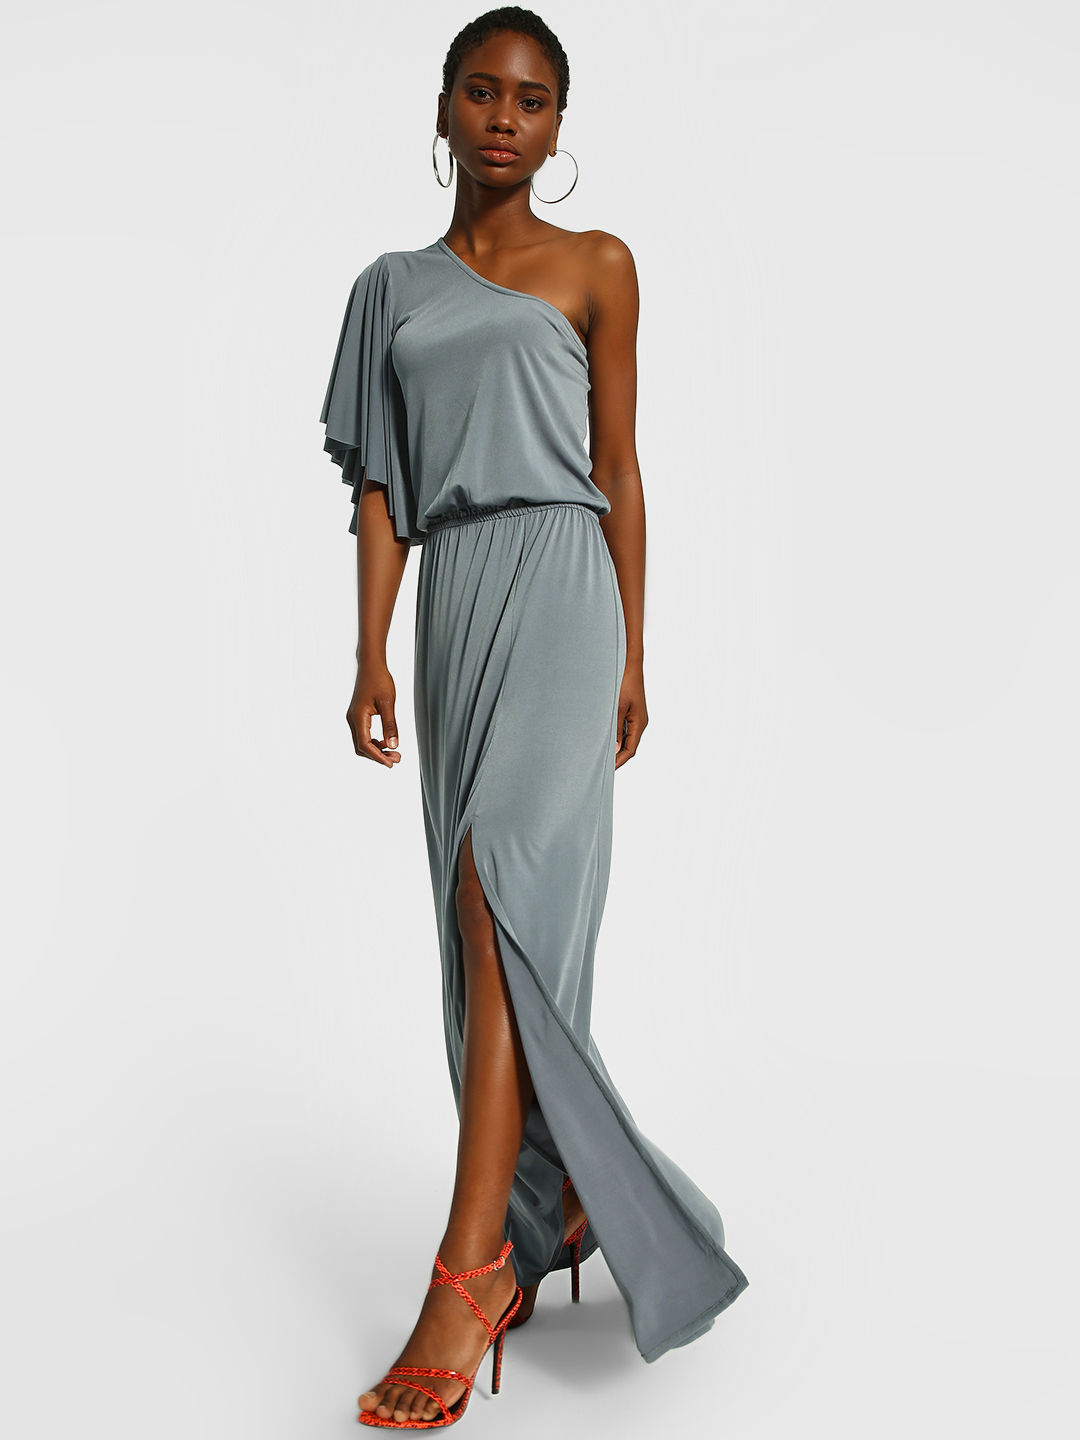 The Paperdoll Company Grey One Shoulder Front Slit Maxi Dress 1